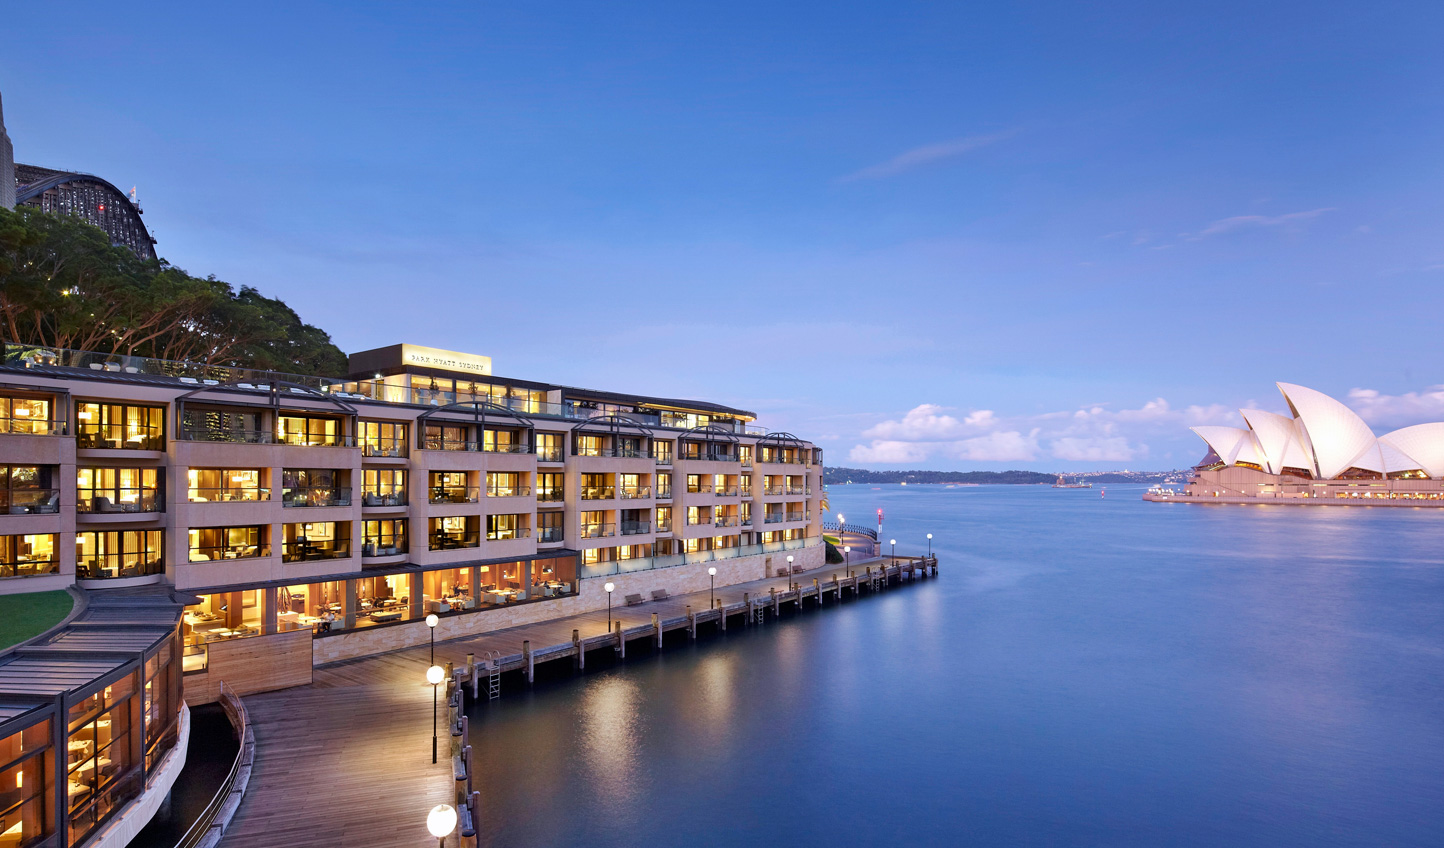 Stay at the Park Hyatt for an unbeatable location in the heart of Sydney